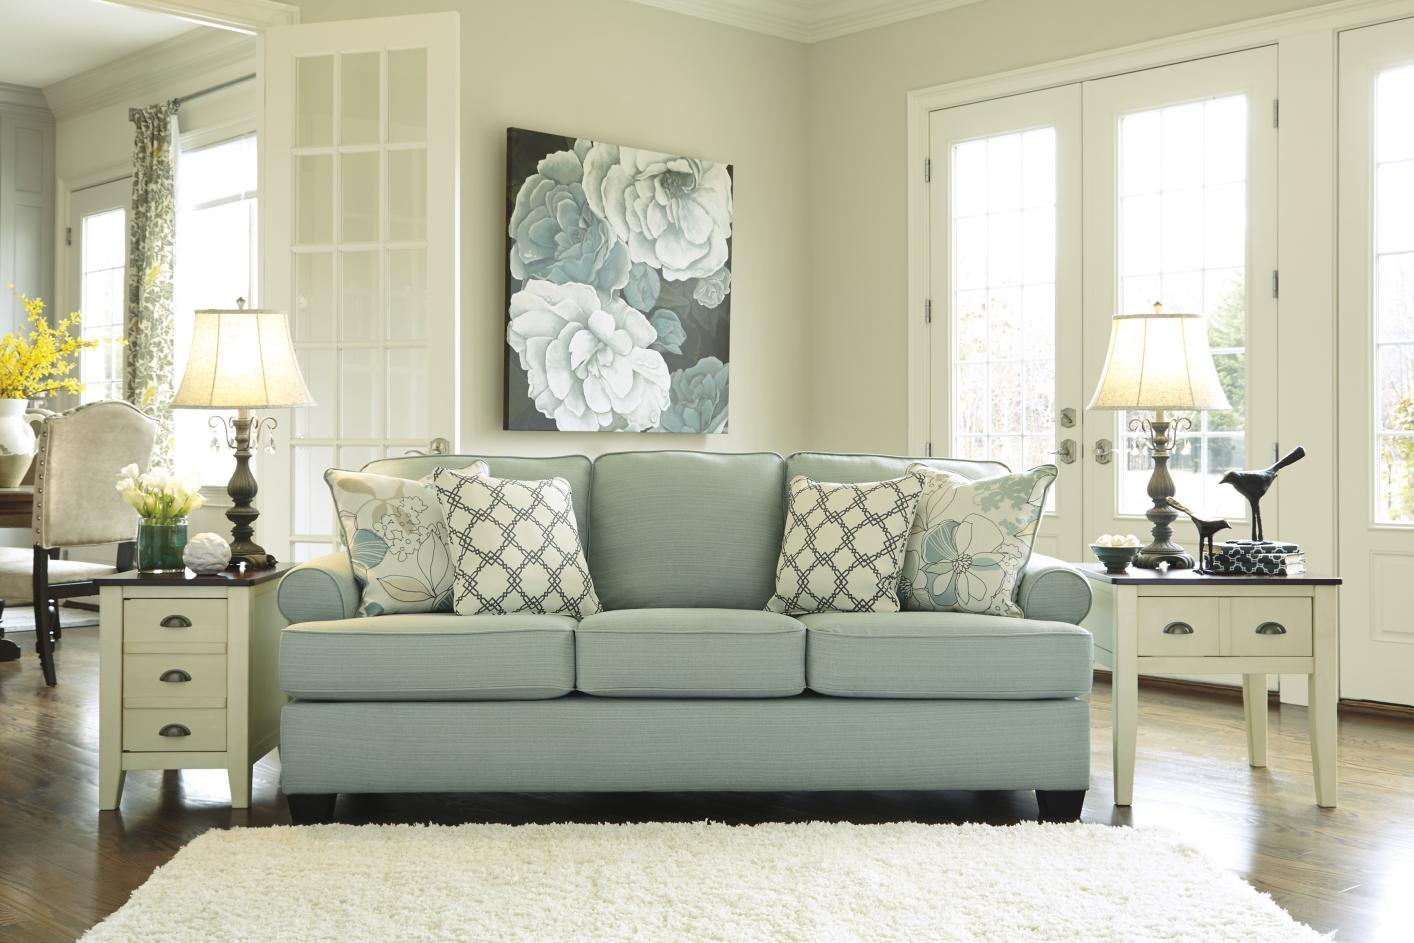 Daystar Seafoam Green Fabric Sofa Steal A Sofa Furniture Outlet